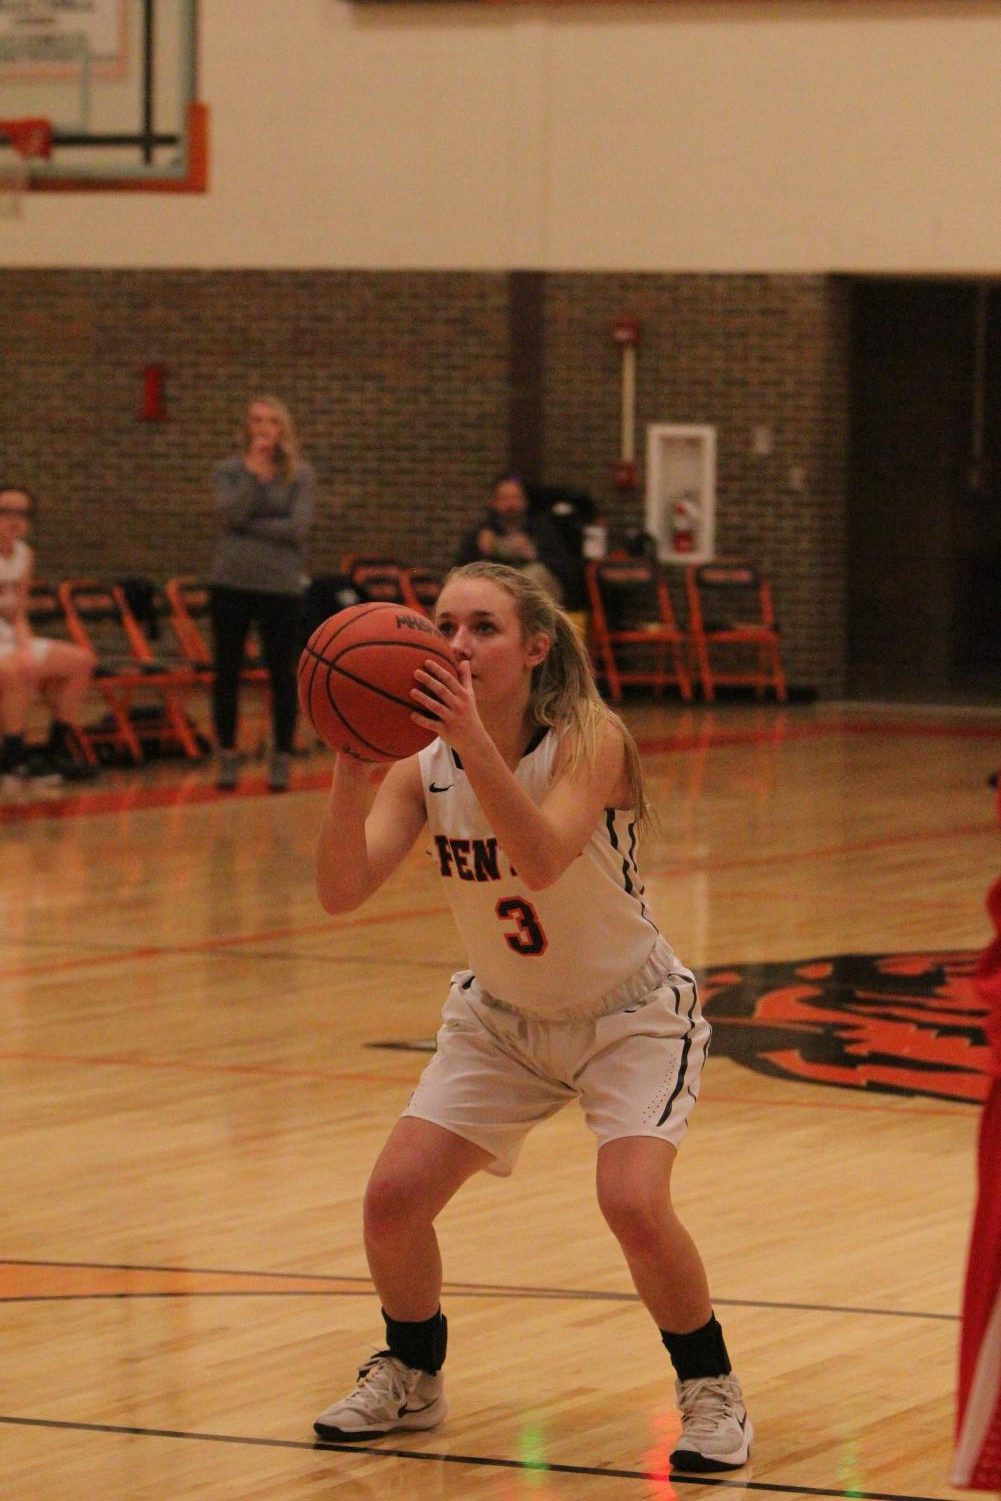 Sophomore Bella Henson lines up to shoot a free throw and score a point for her team. On Jan. 30 the JV girls basketball team played against Swartz Creek and won 50-24,